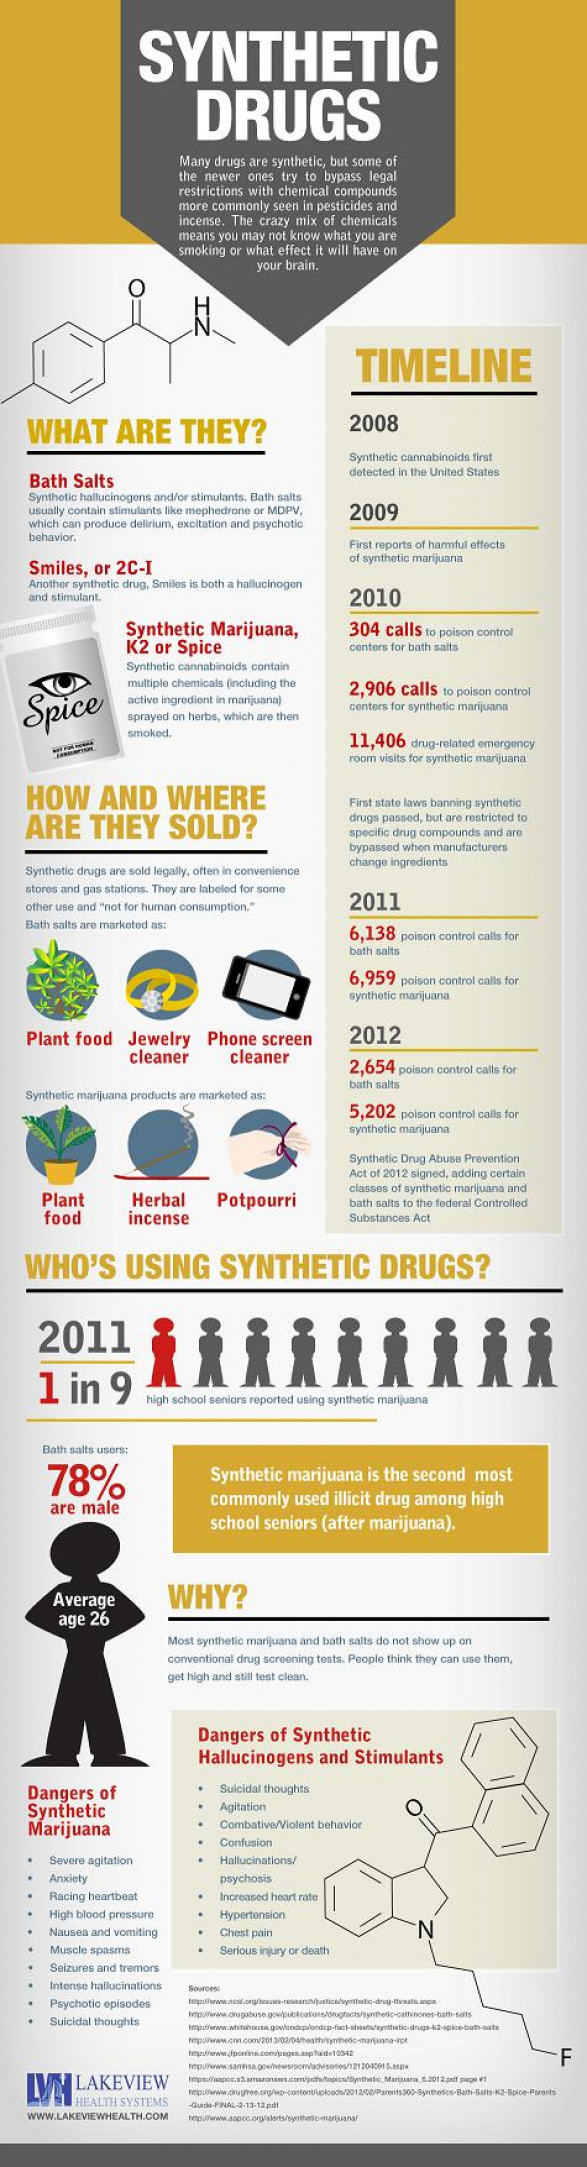 Synthetic Drugs: Who